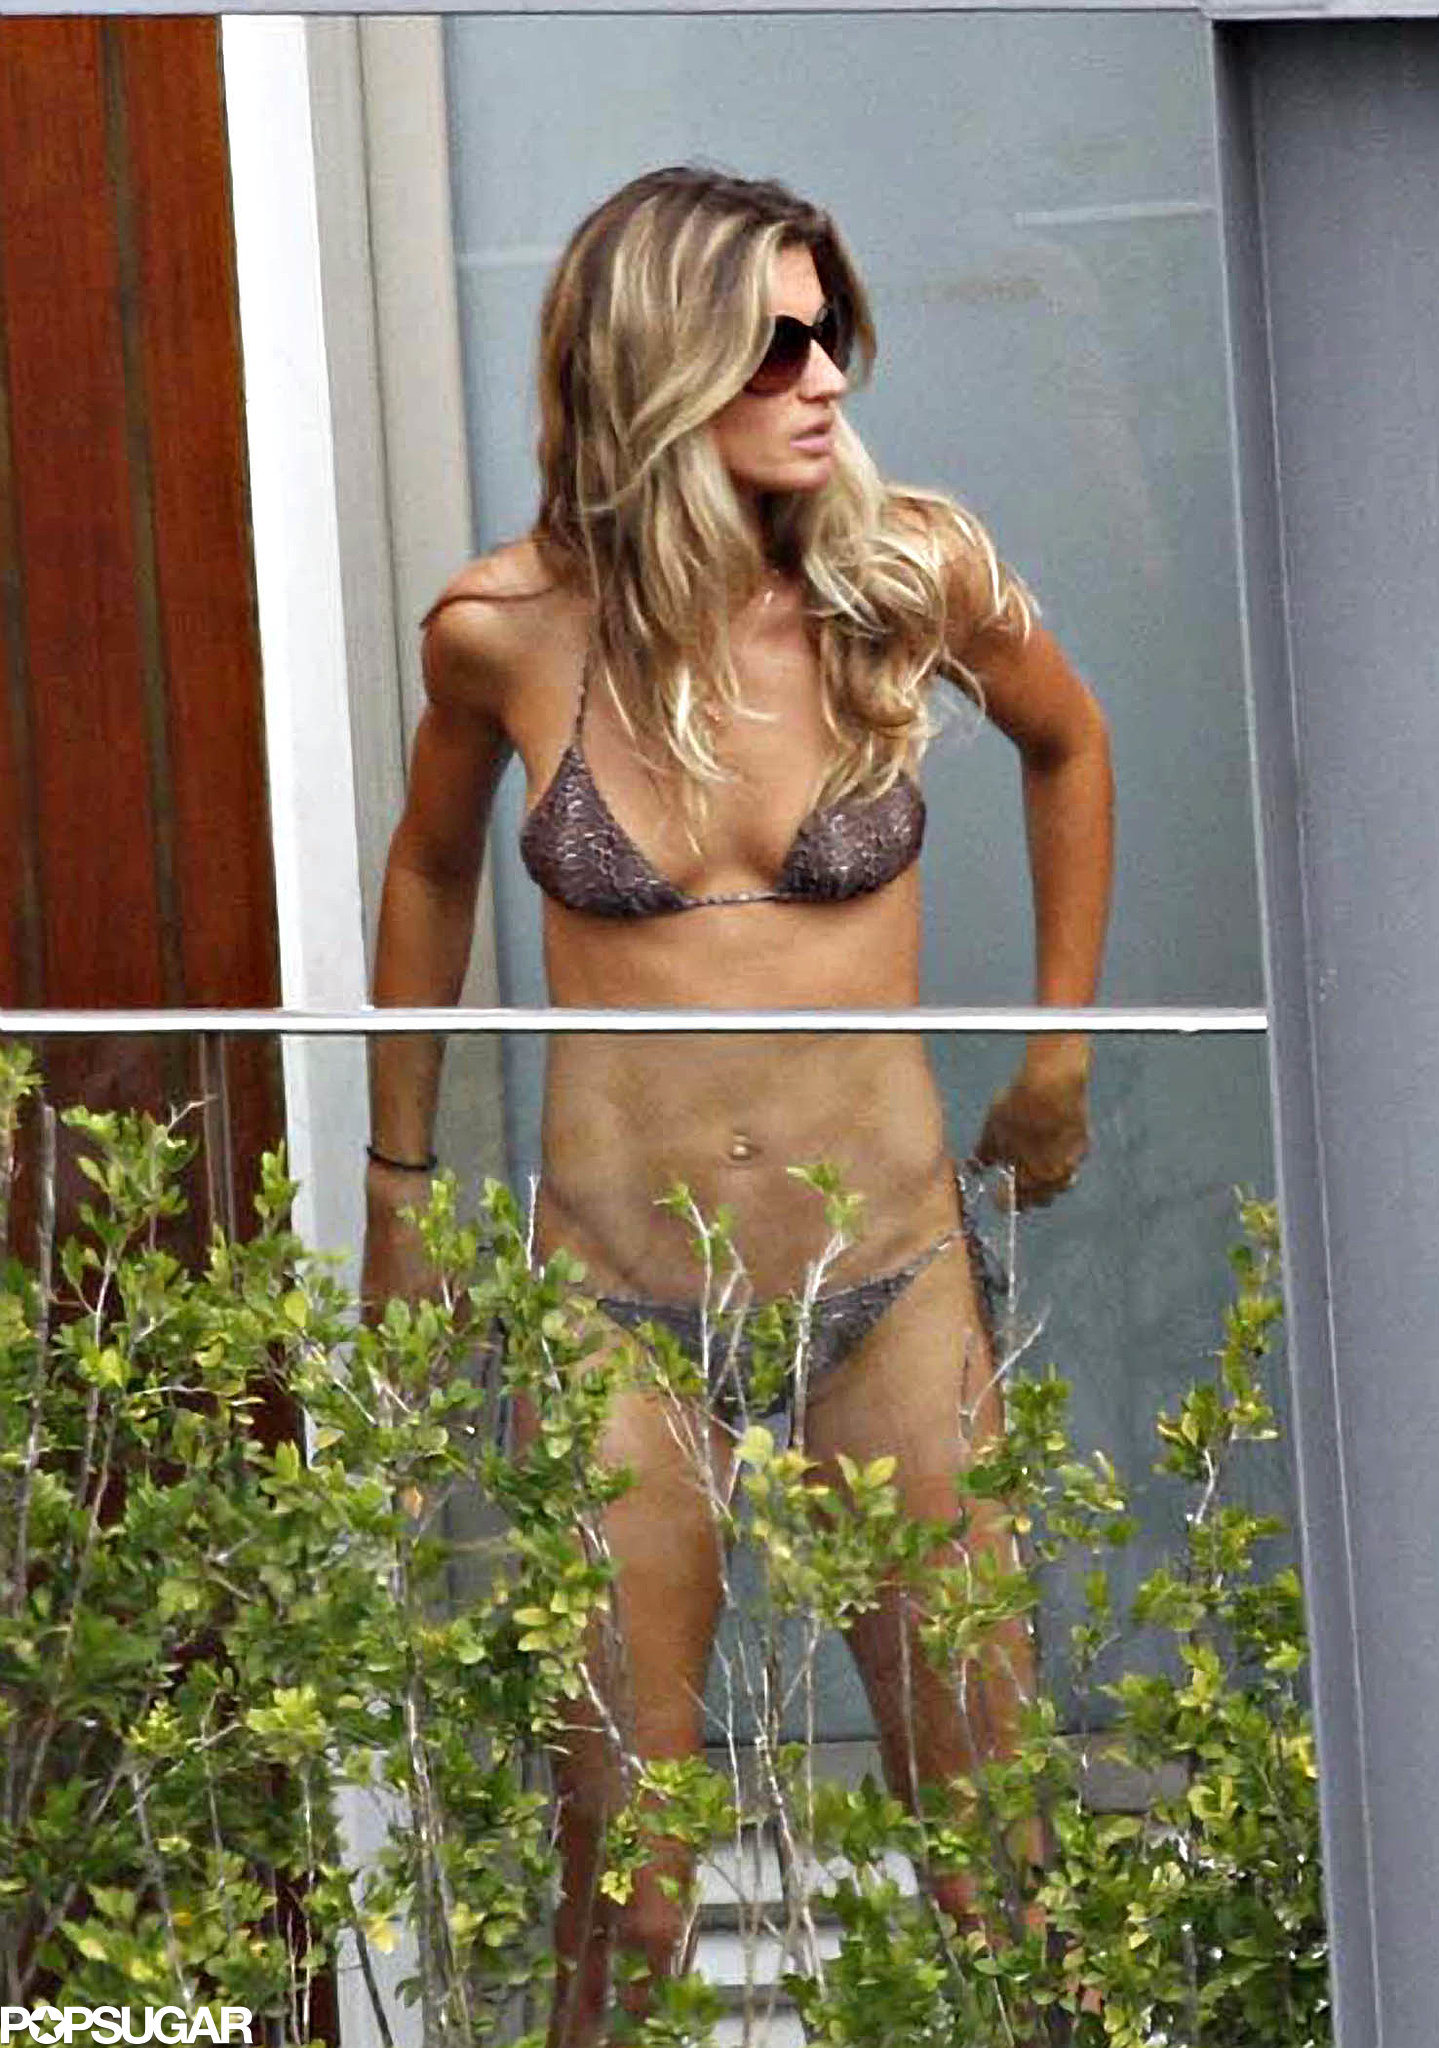 She stepped out in a bikini during her March 2011 trip to Brazil.